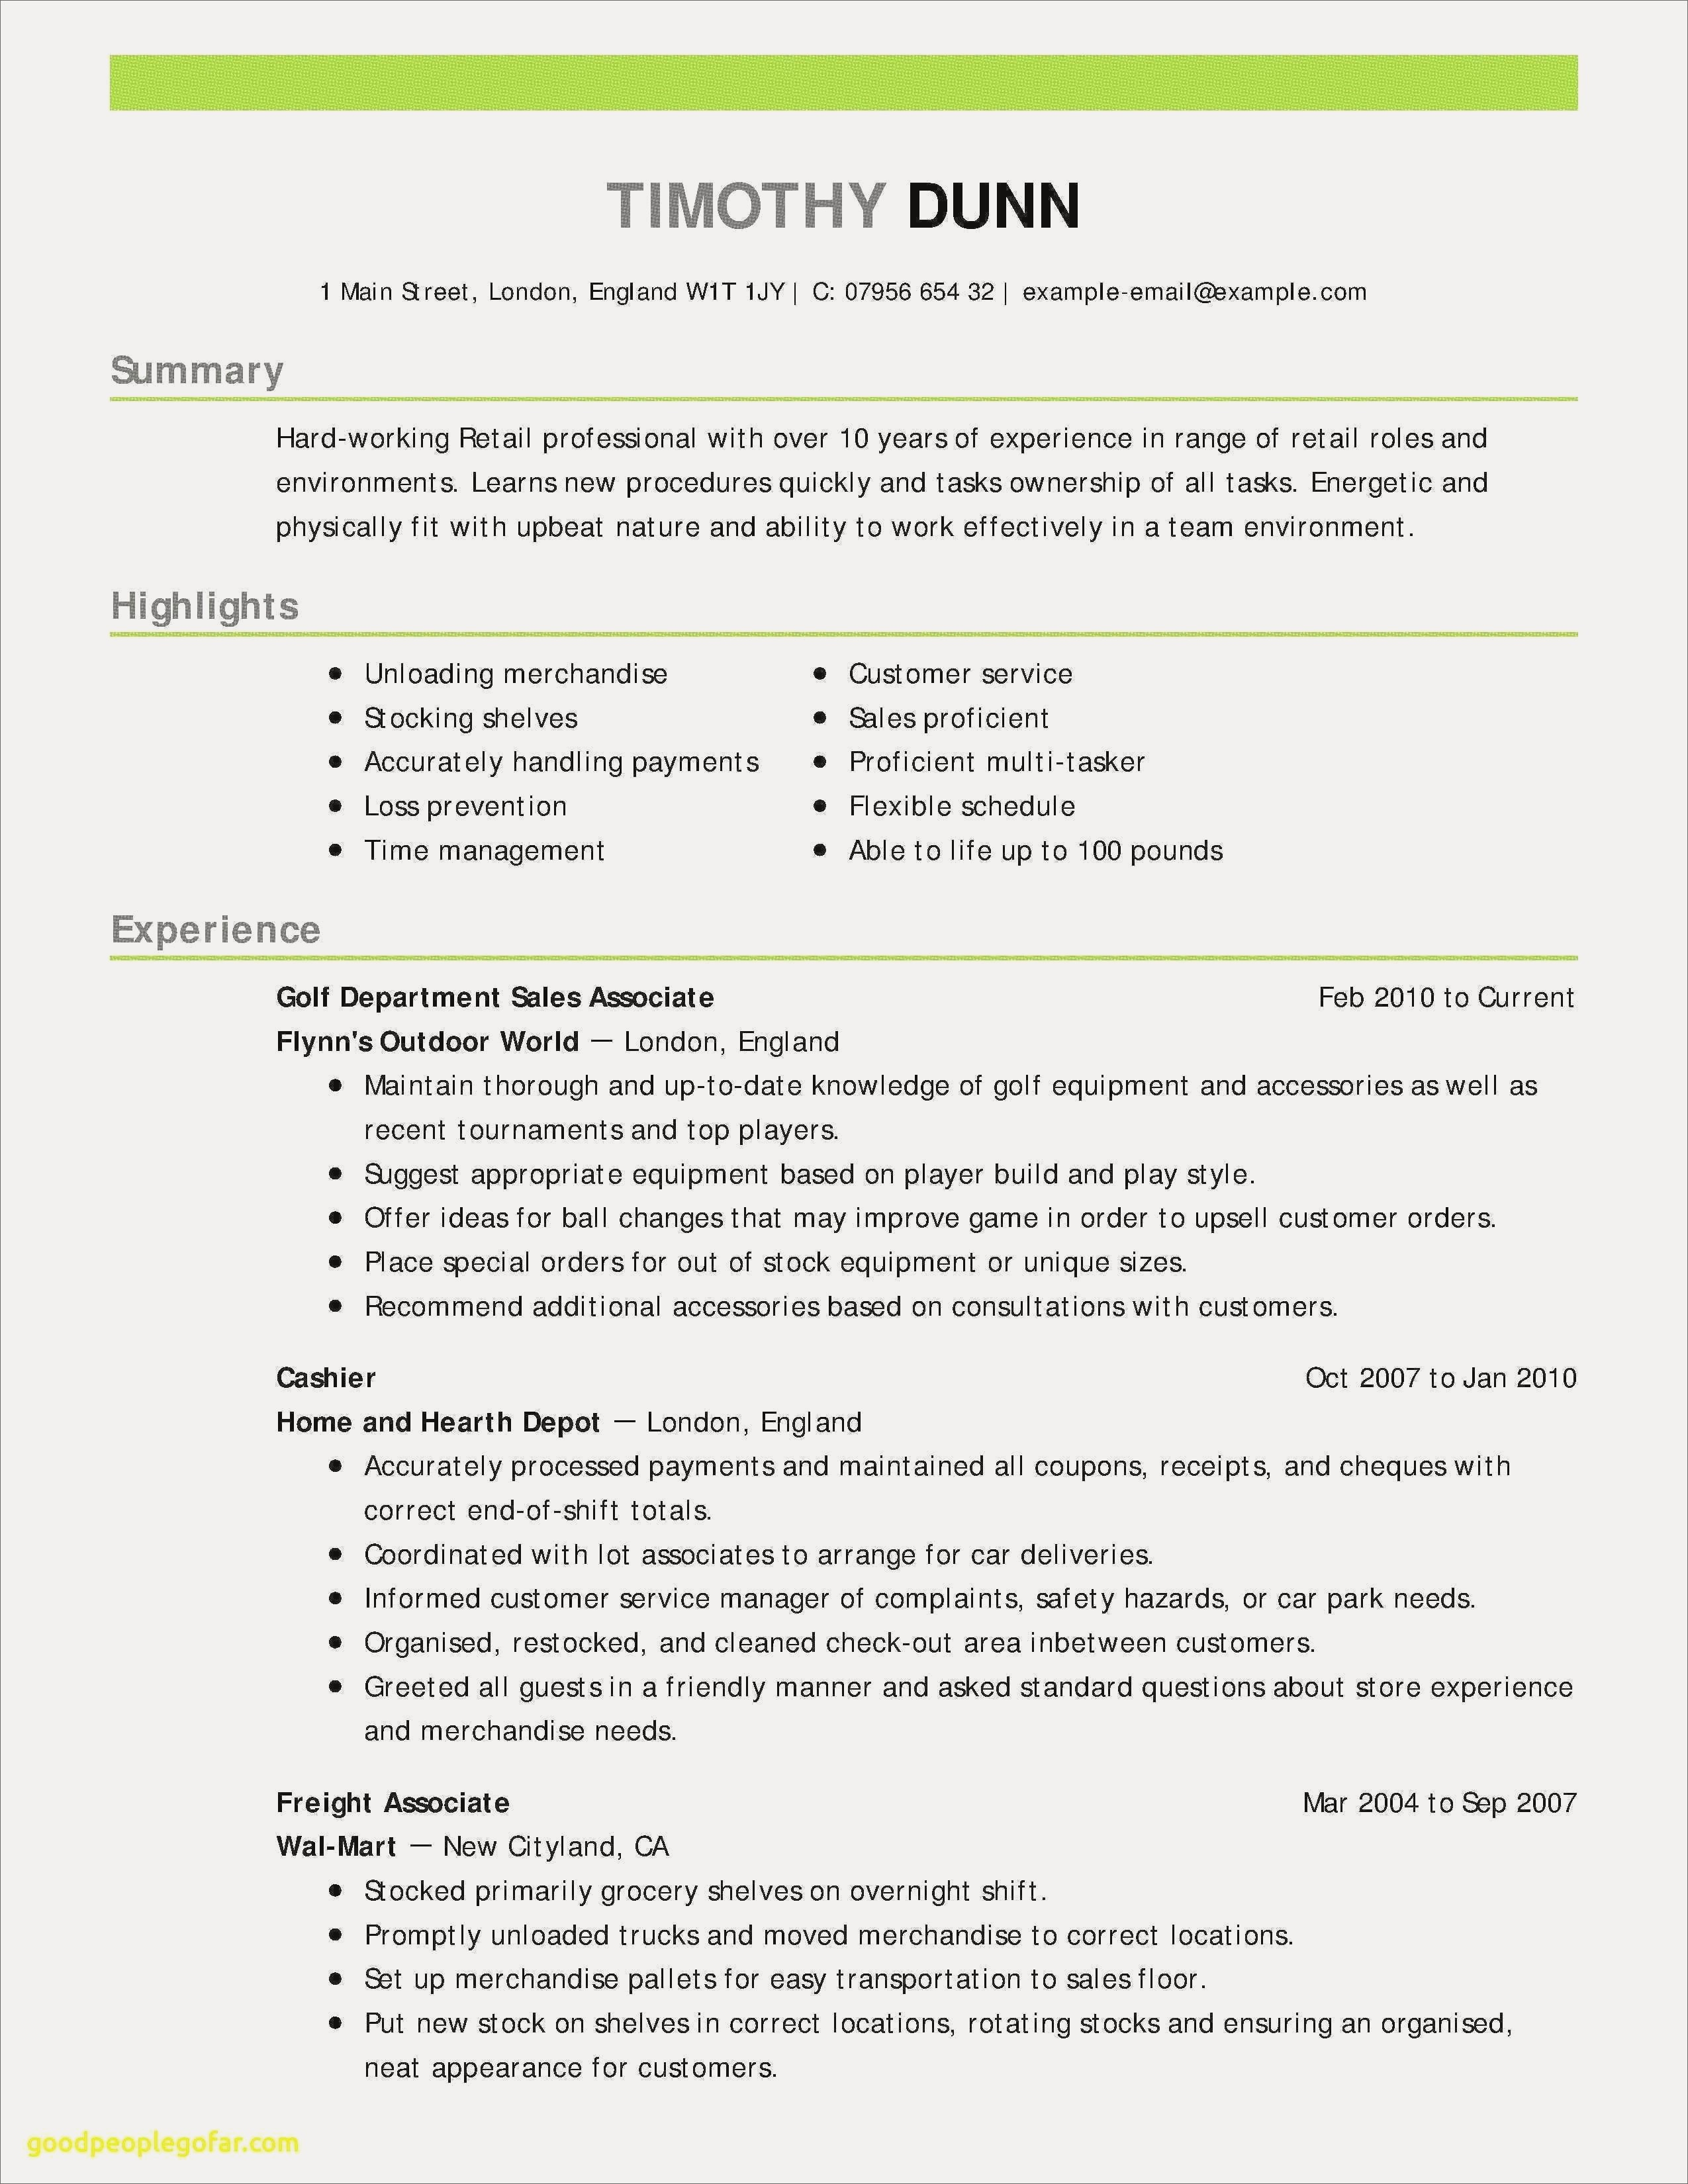 Resume Introduction - Resume Examples Skills and Abilities Best Customer Service Resume